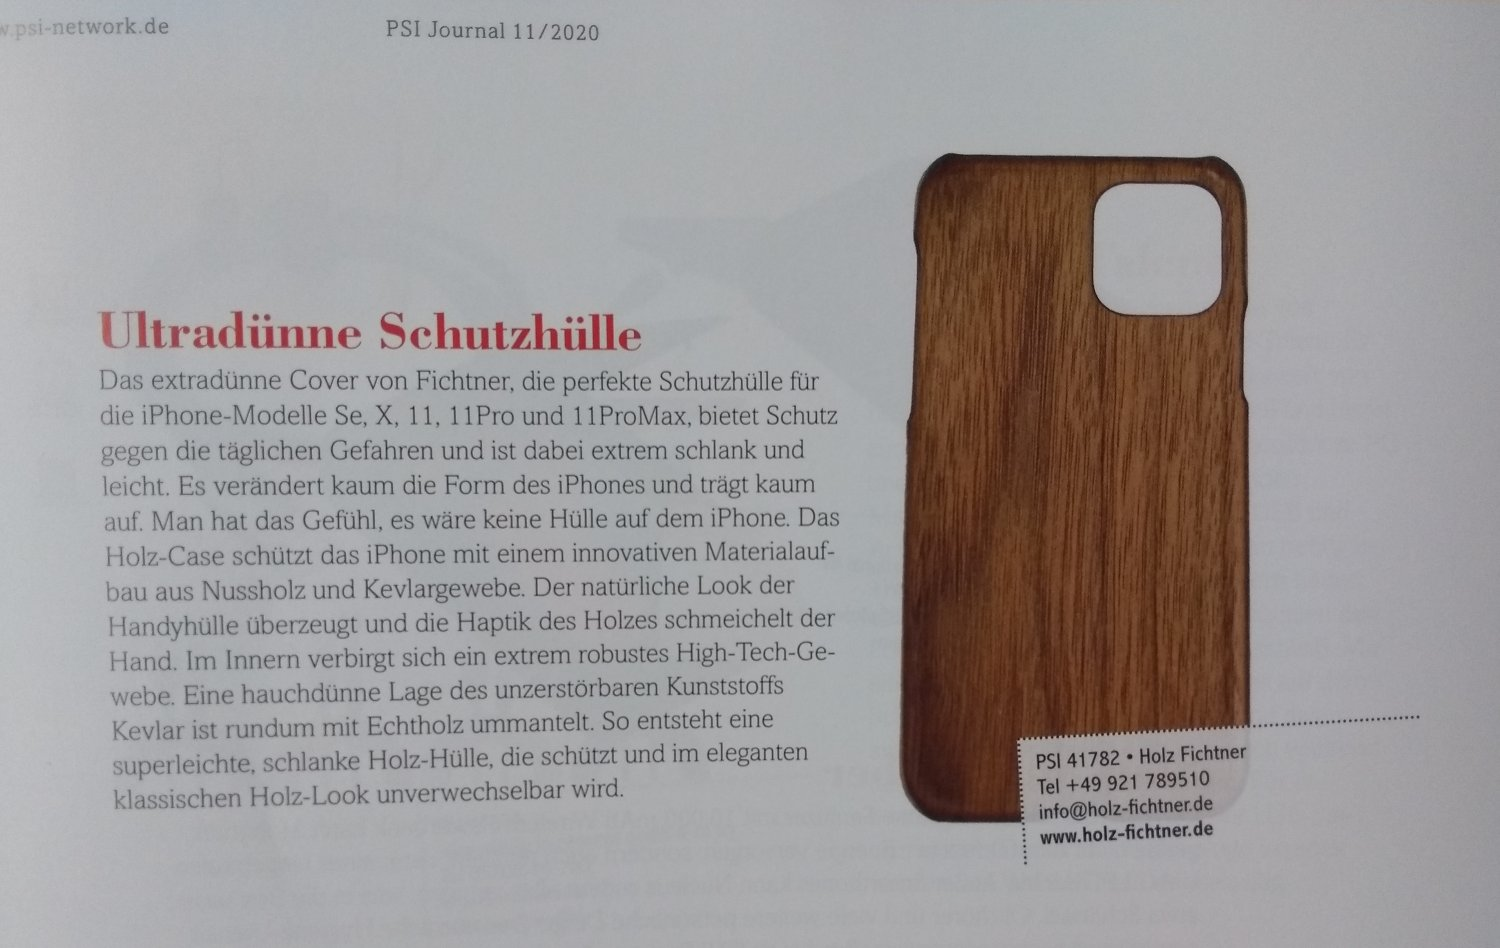 Holz-Fichtner-PSI-Journal-November-2020-Seite-25-1500